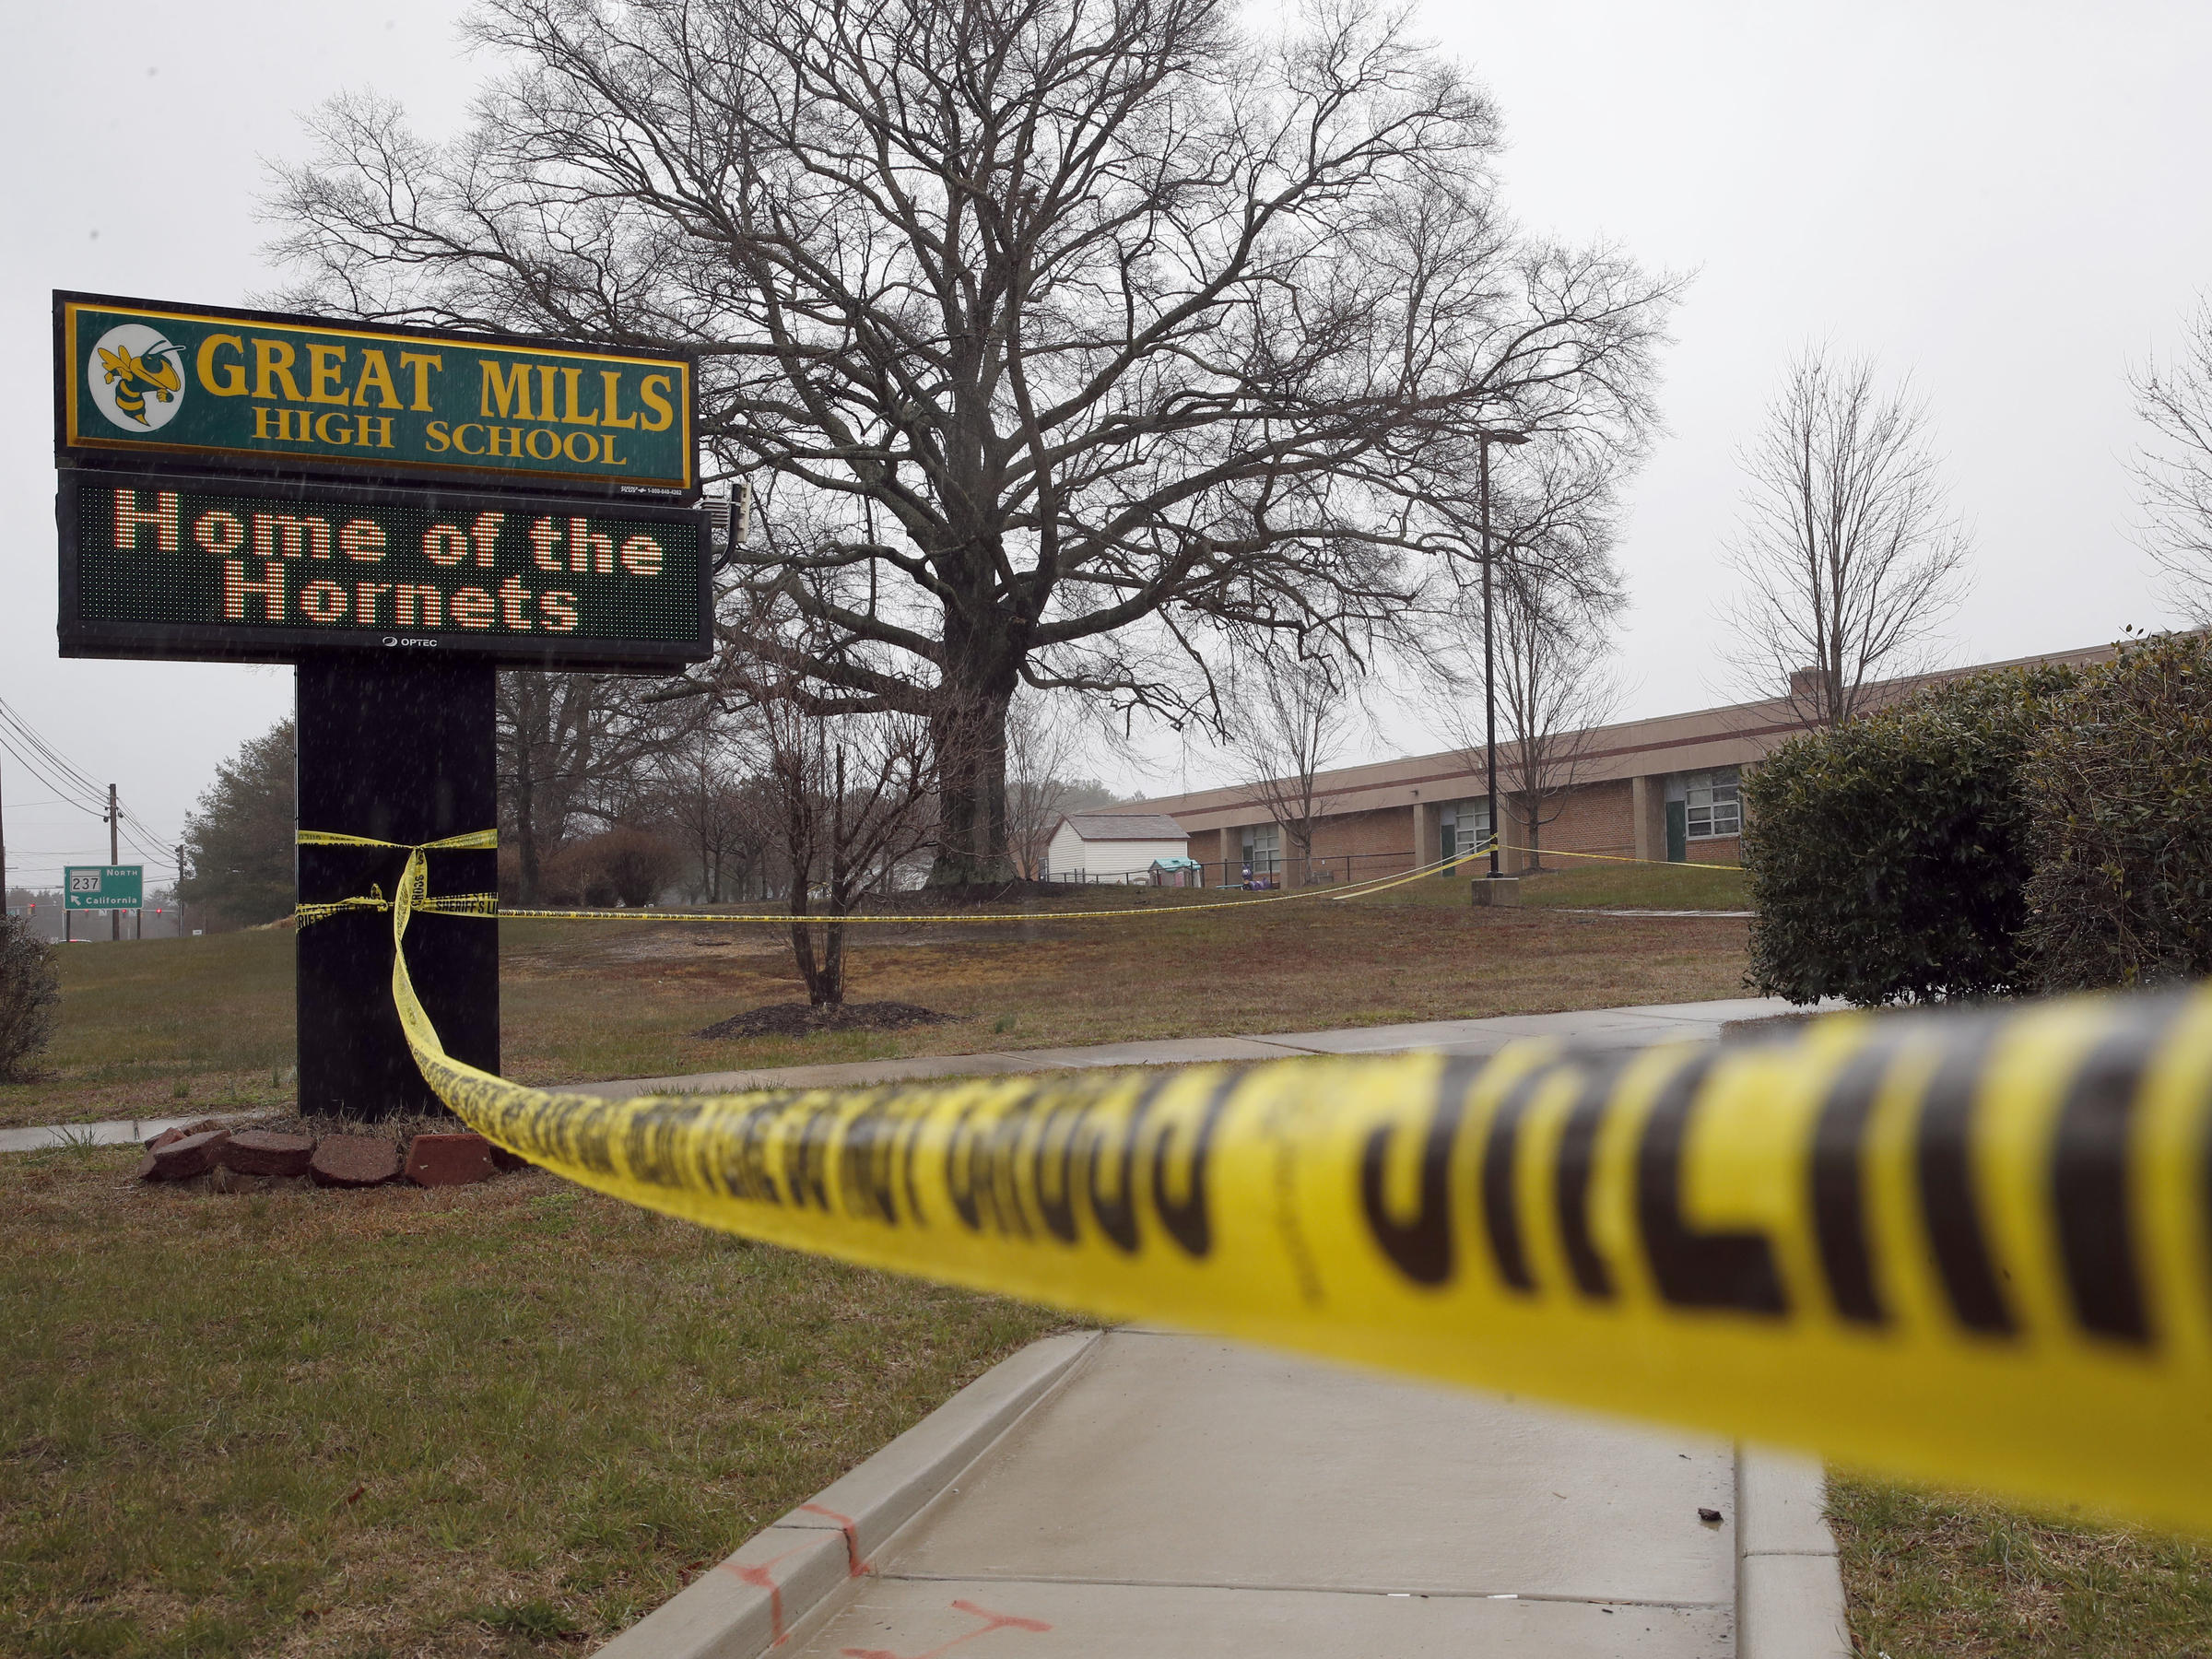 Great Mills HS shooter died from self-inflicted gunshot wound, police confirm